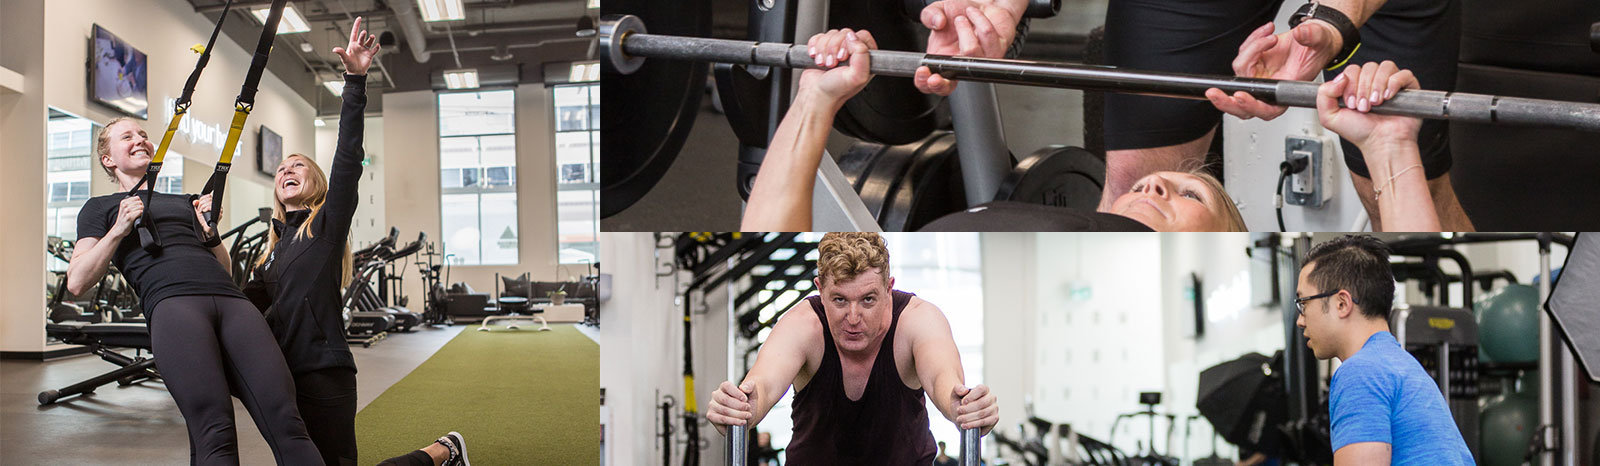 Meet Our Trainers Better Bodies Club Personal Training